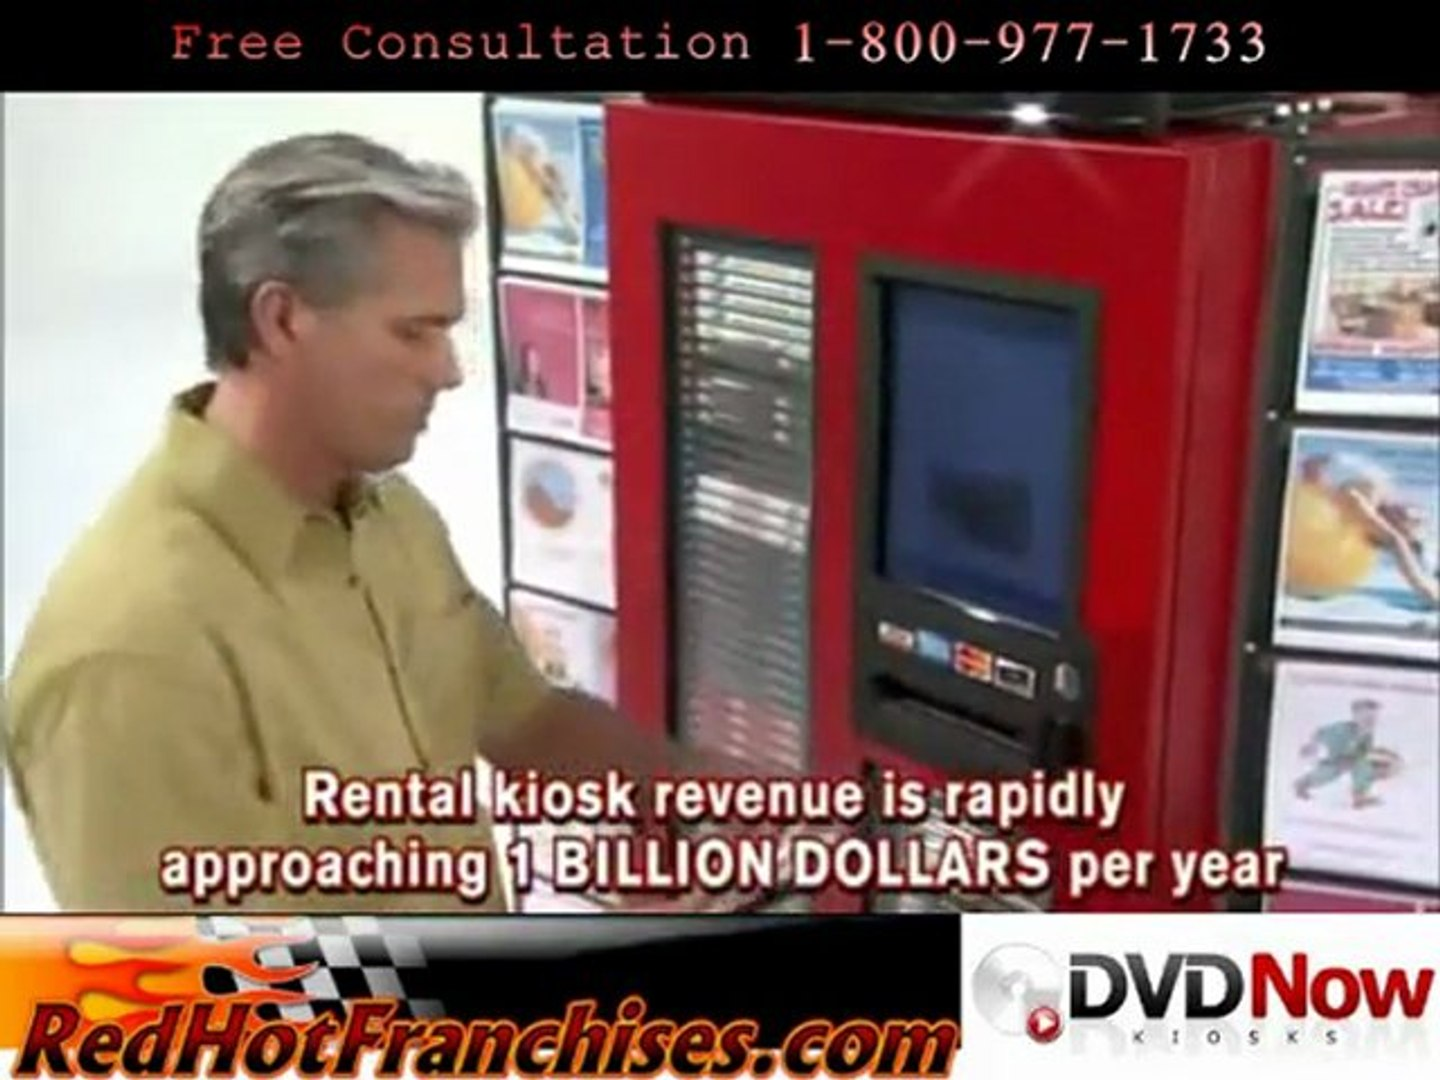 DVD Now Kiosk Franchise The Leading automated DVD Rental